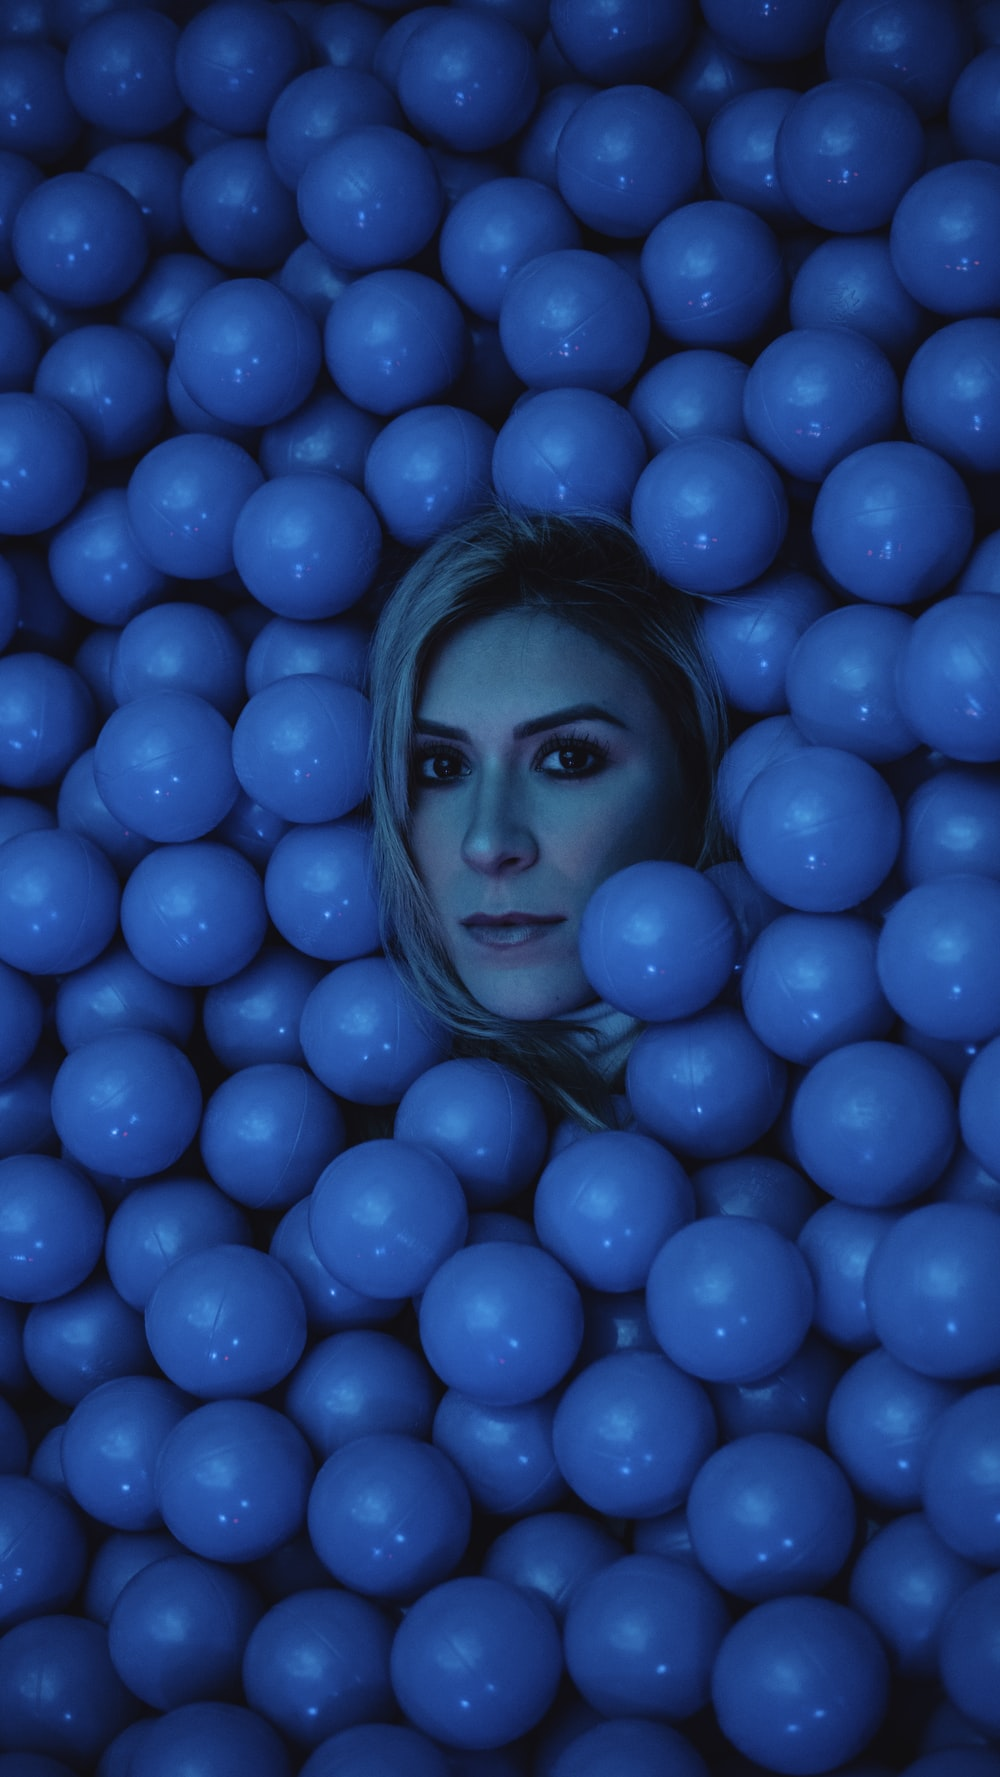 woman's face surrounded by blue balls